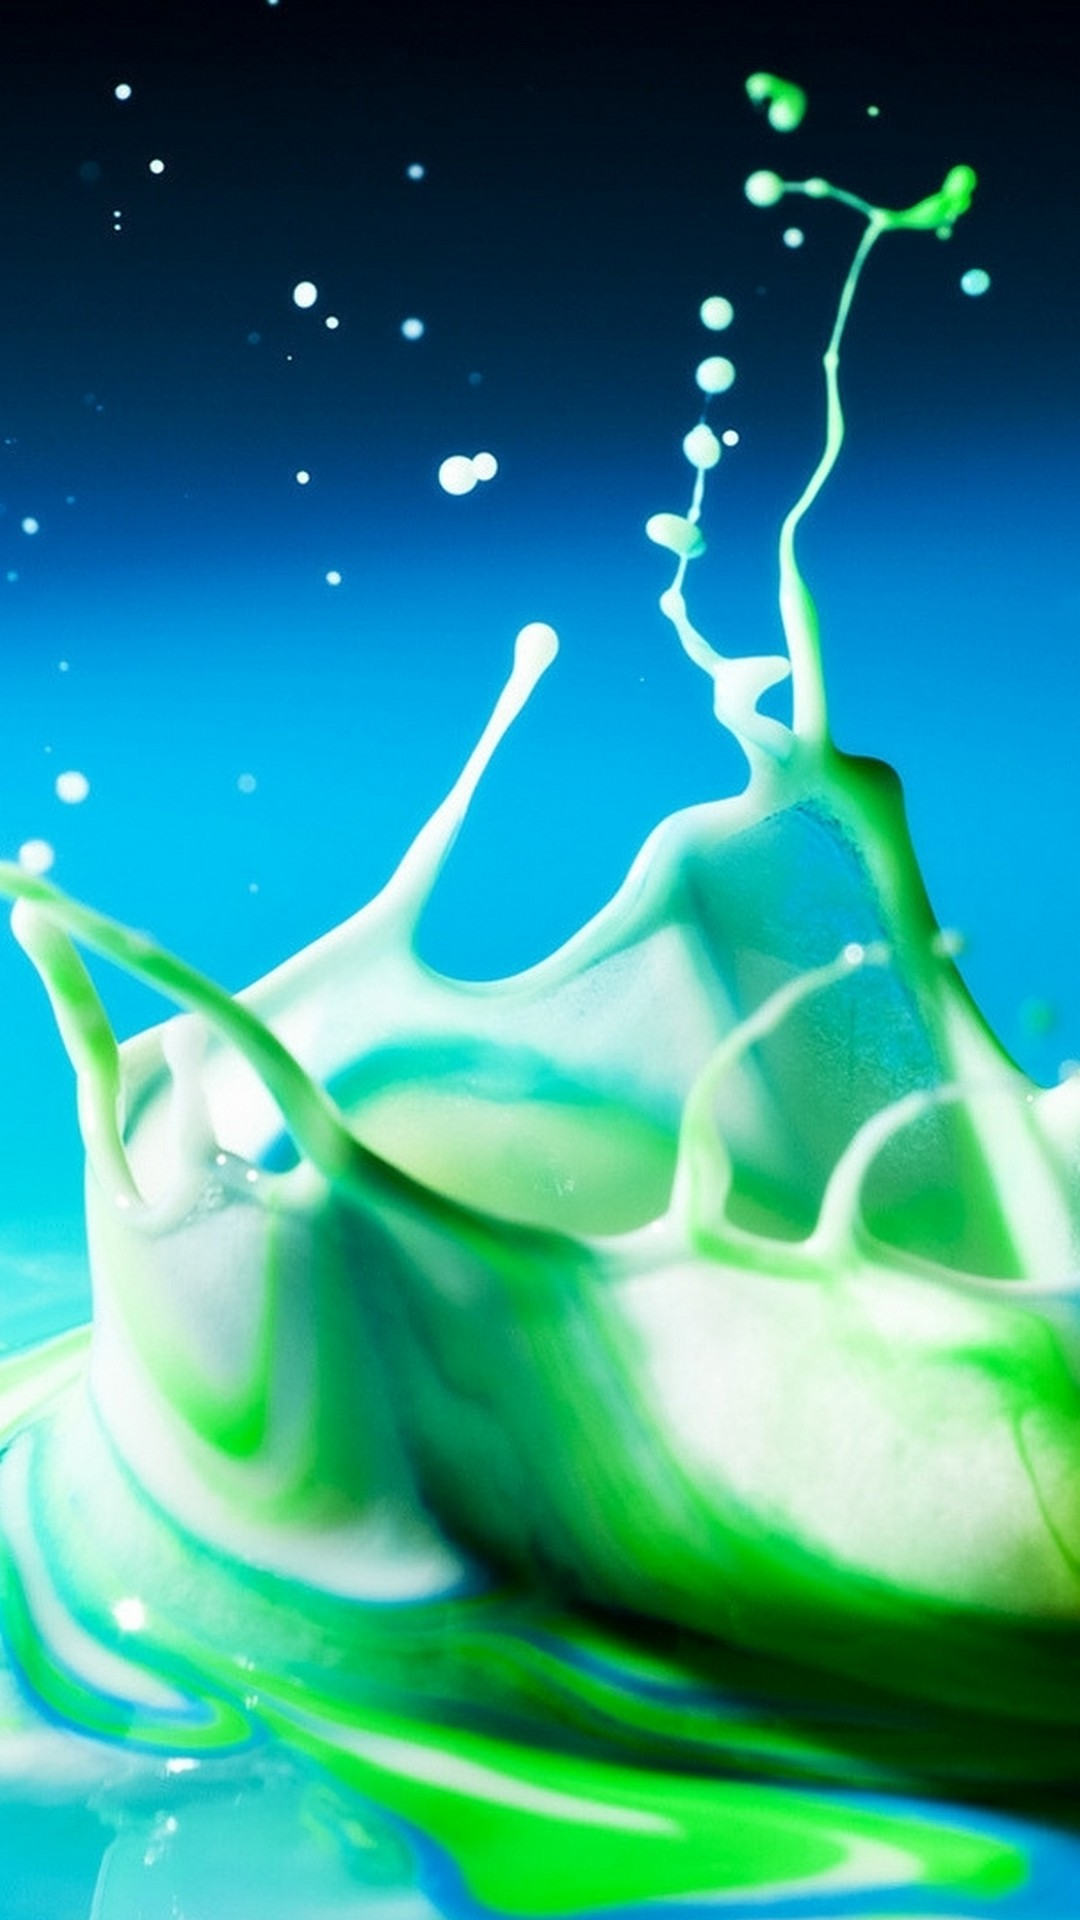 Free Milky Green Liquid Wallpaper IPhone X 2019 3D